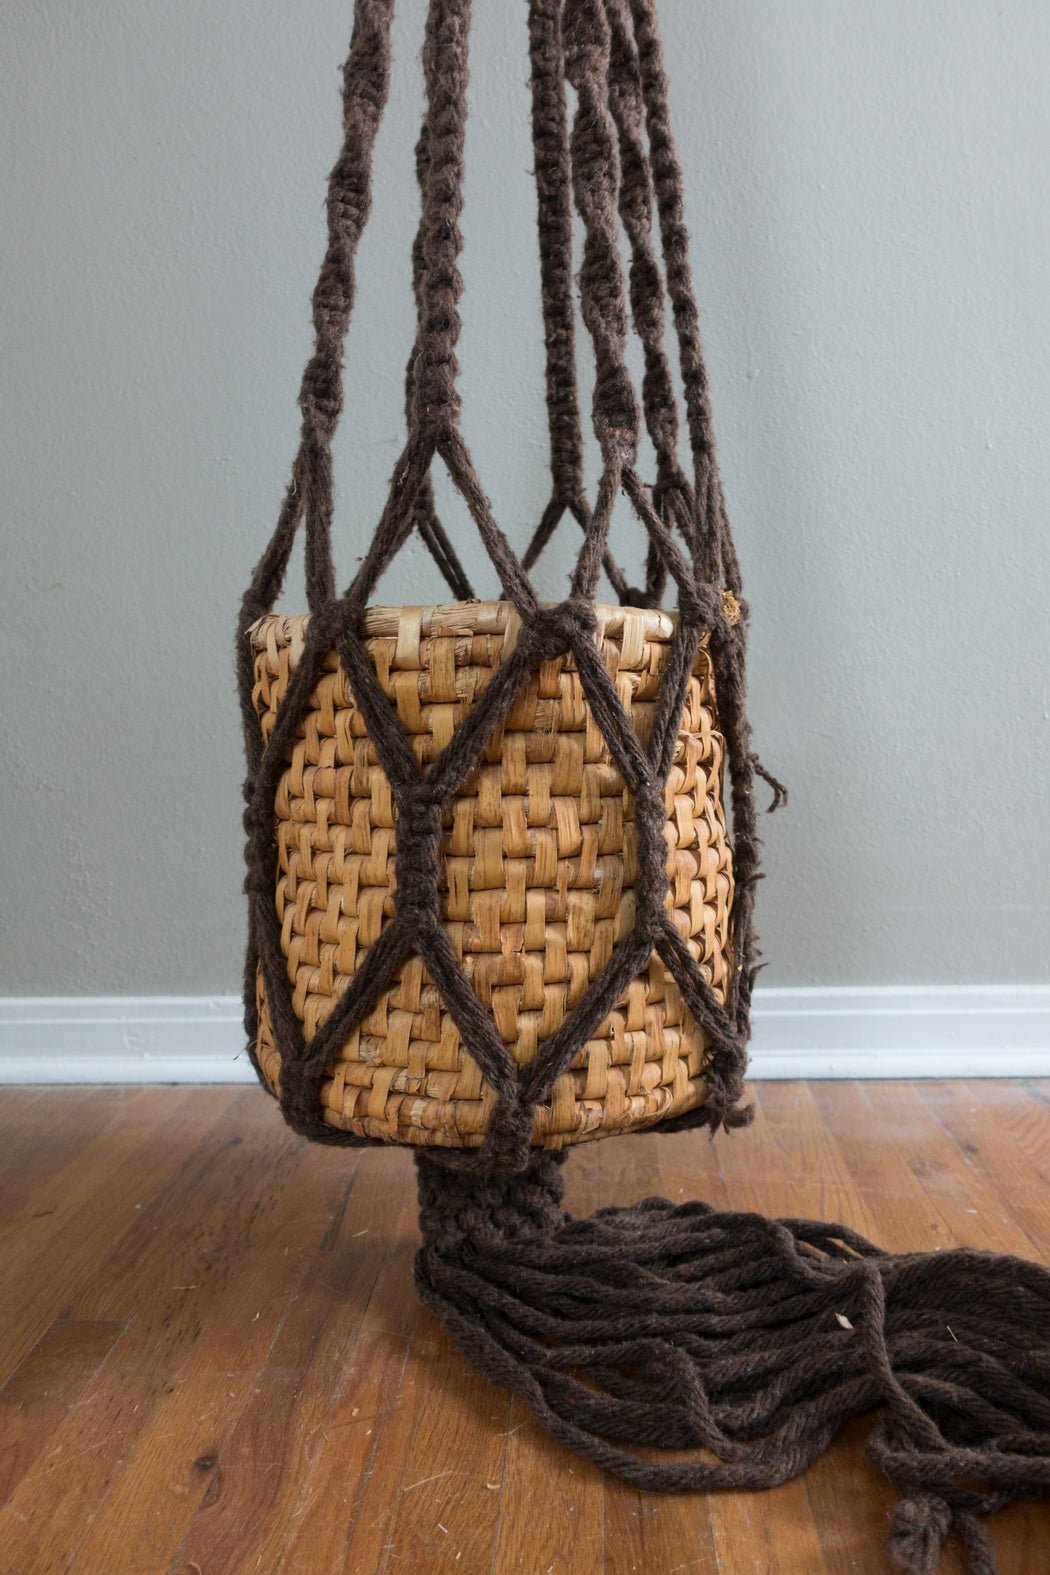 Vintage 10ft Macrame Hanging Planter for Tall Ceilings